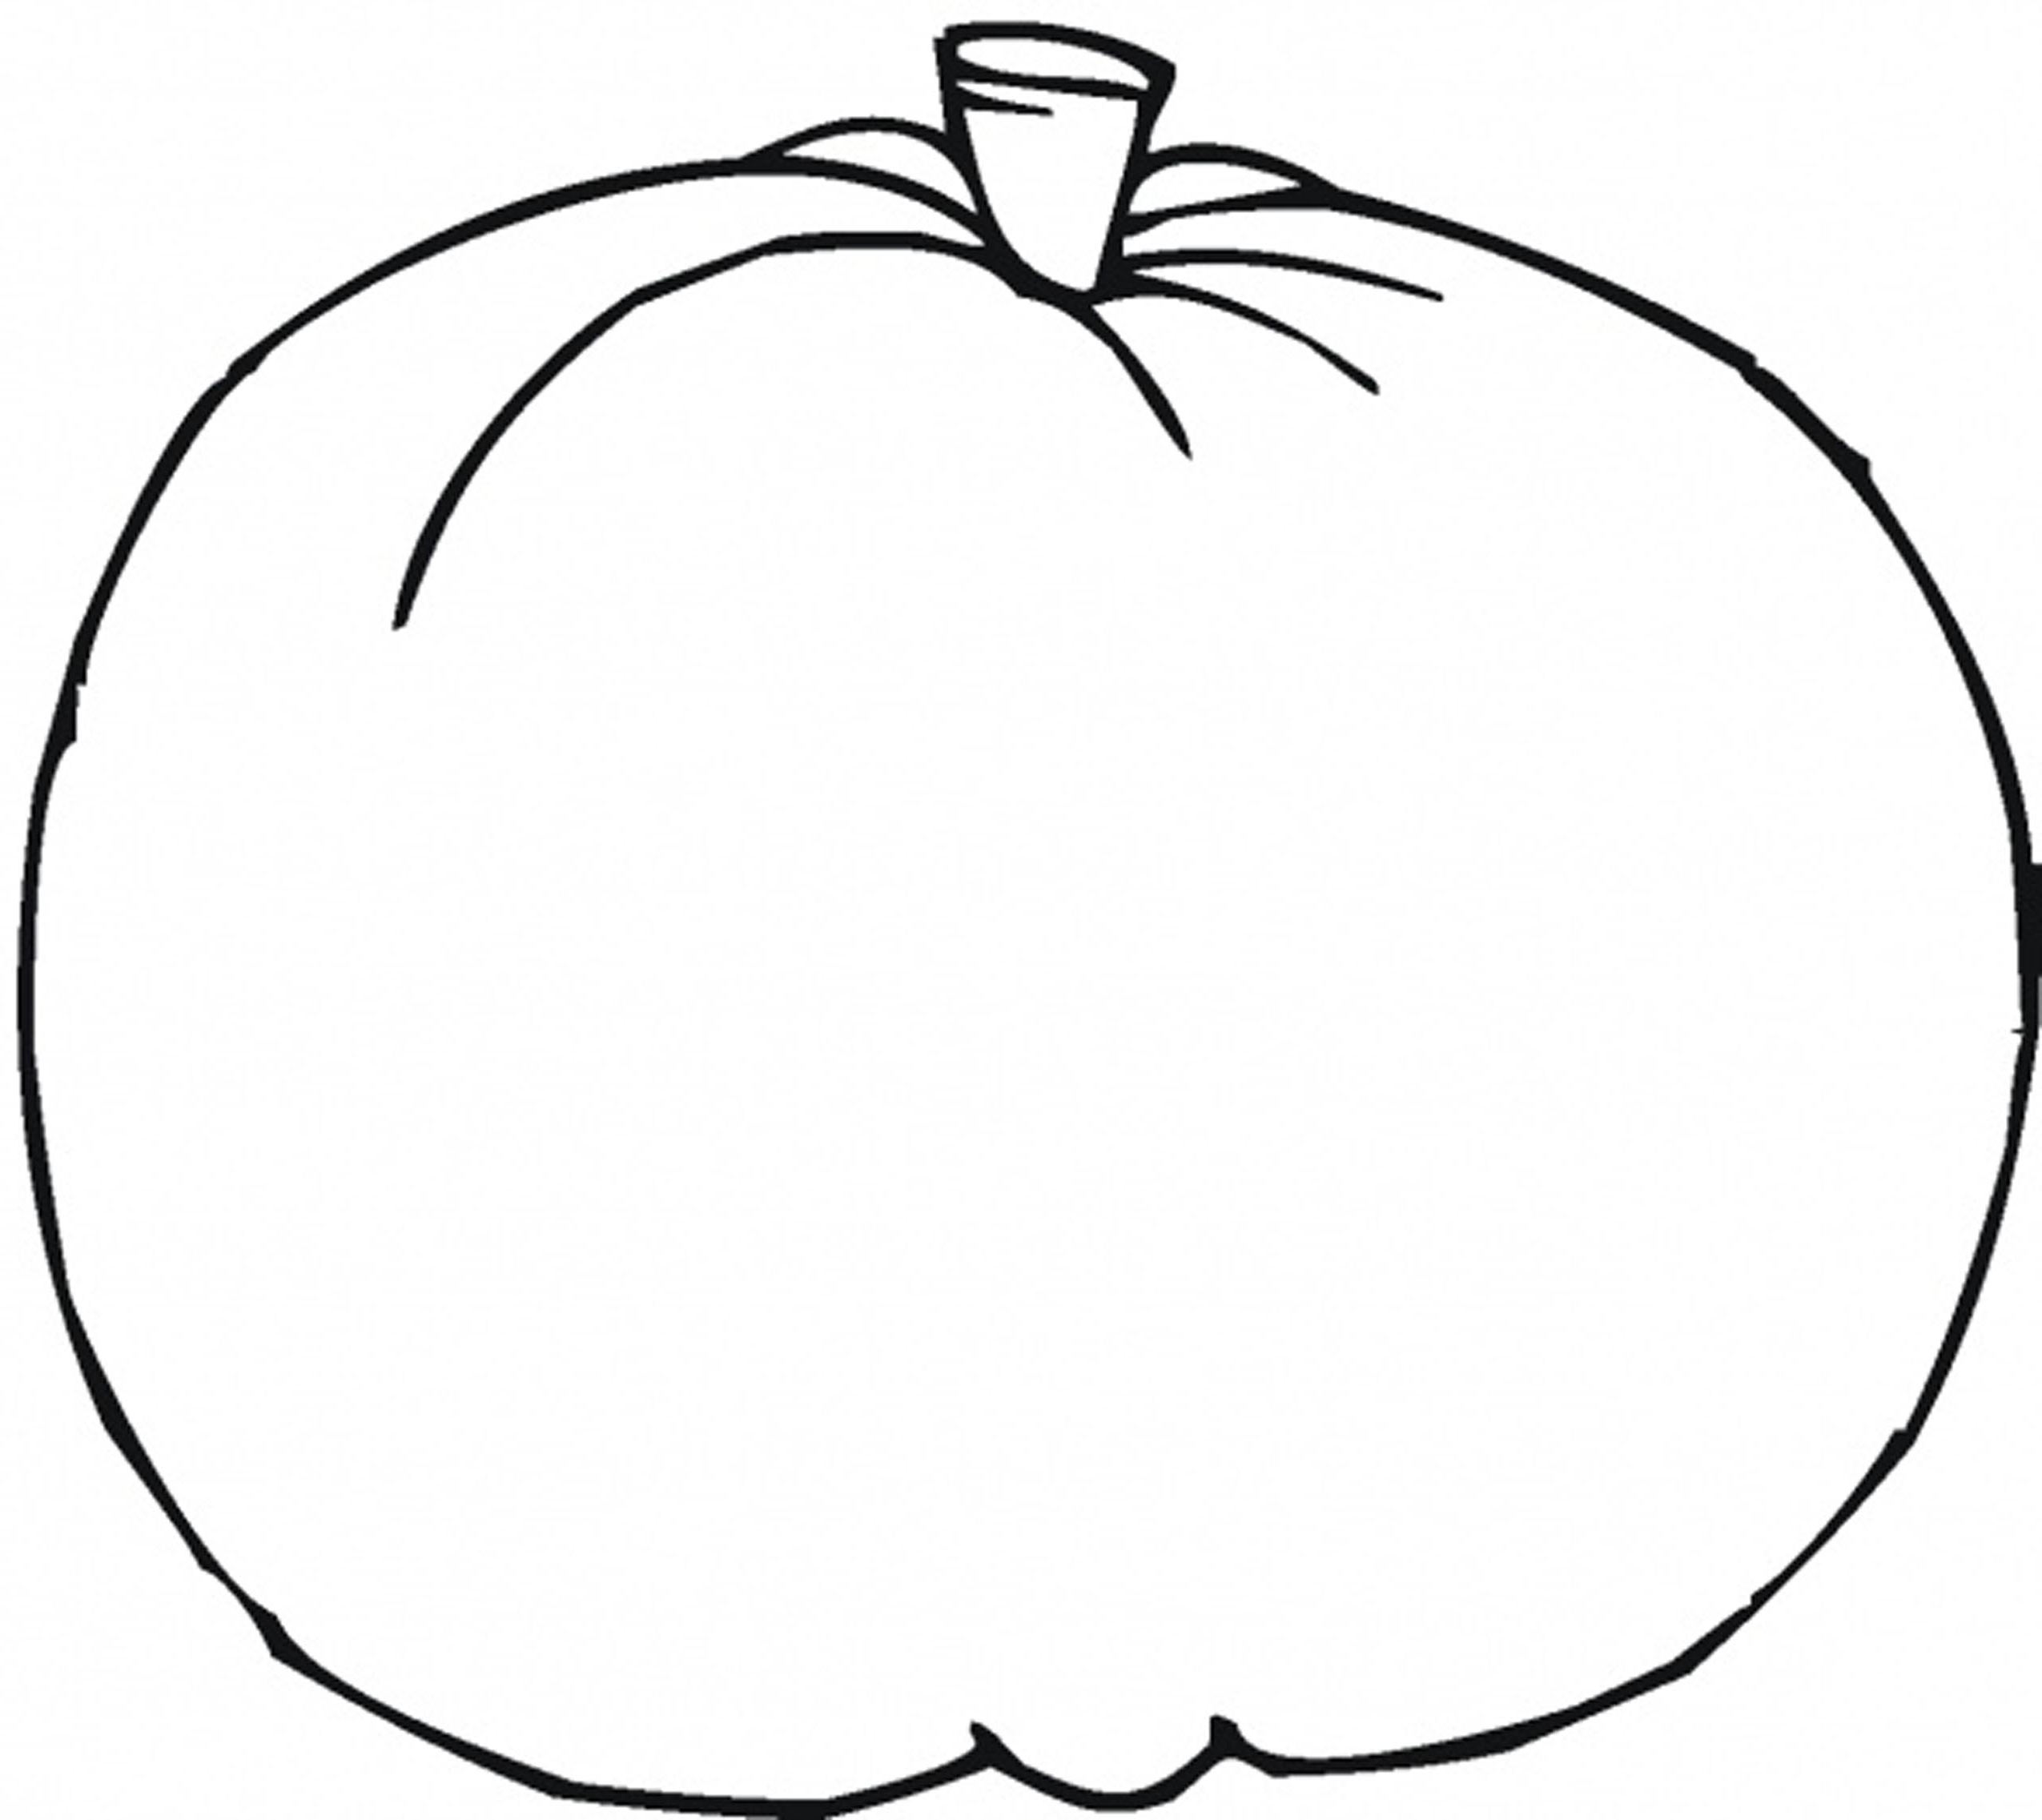 Halloween Pumpkin Drawing For Kids